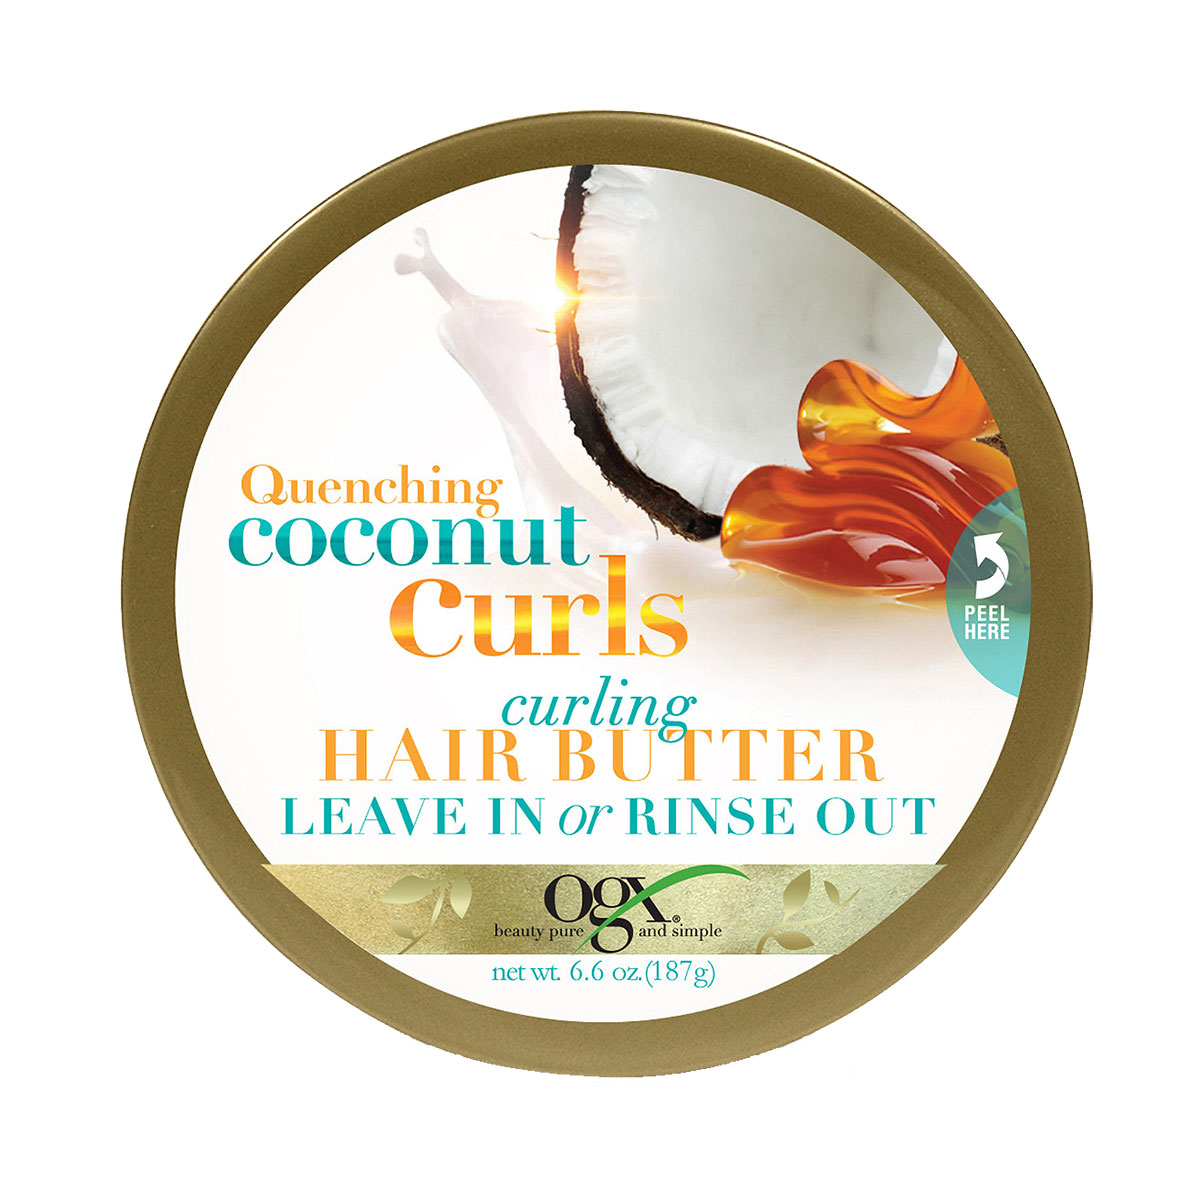 OGX Quenching Coconut Curls Curling Butter